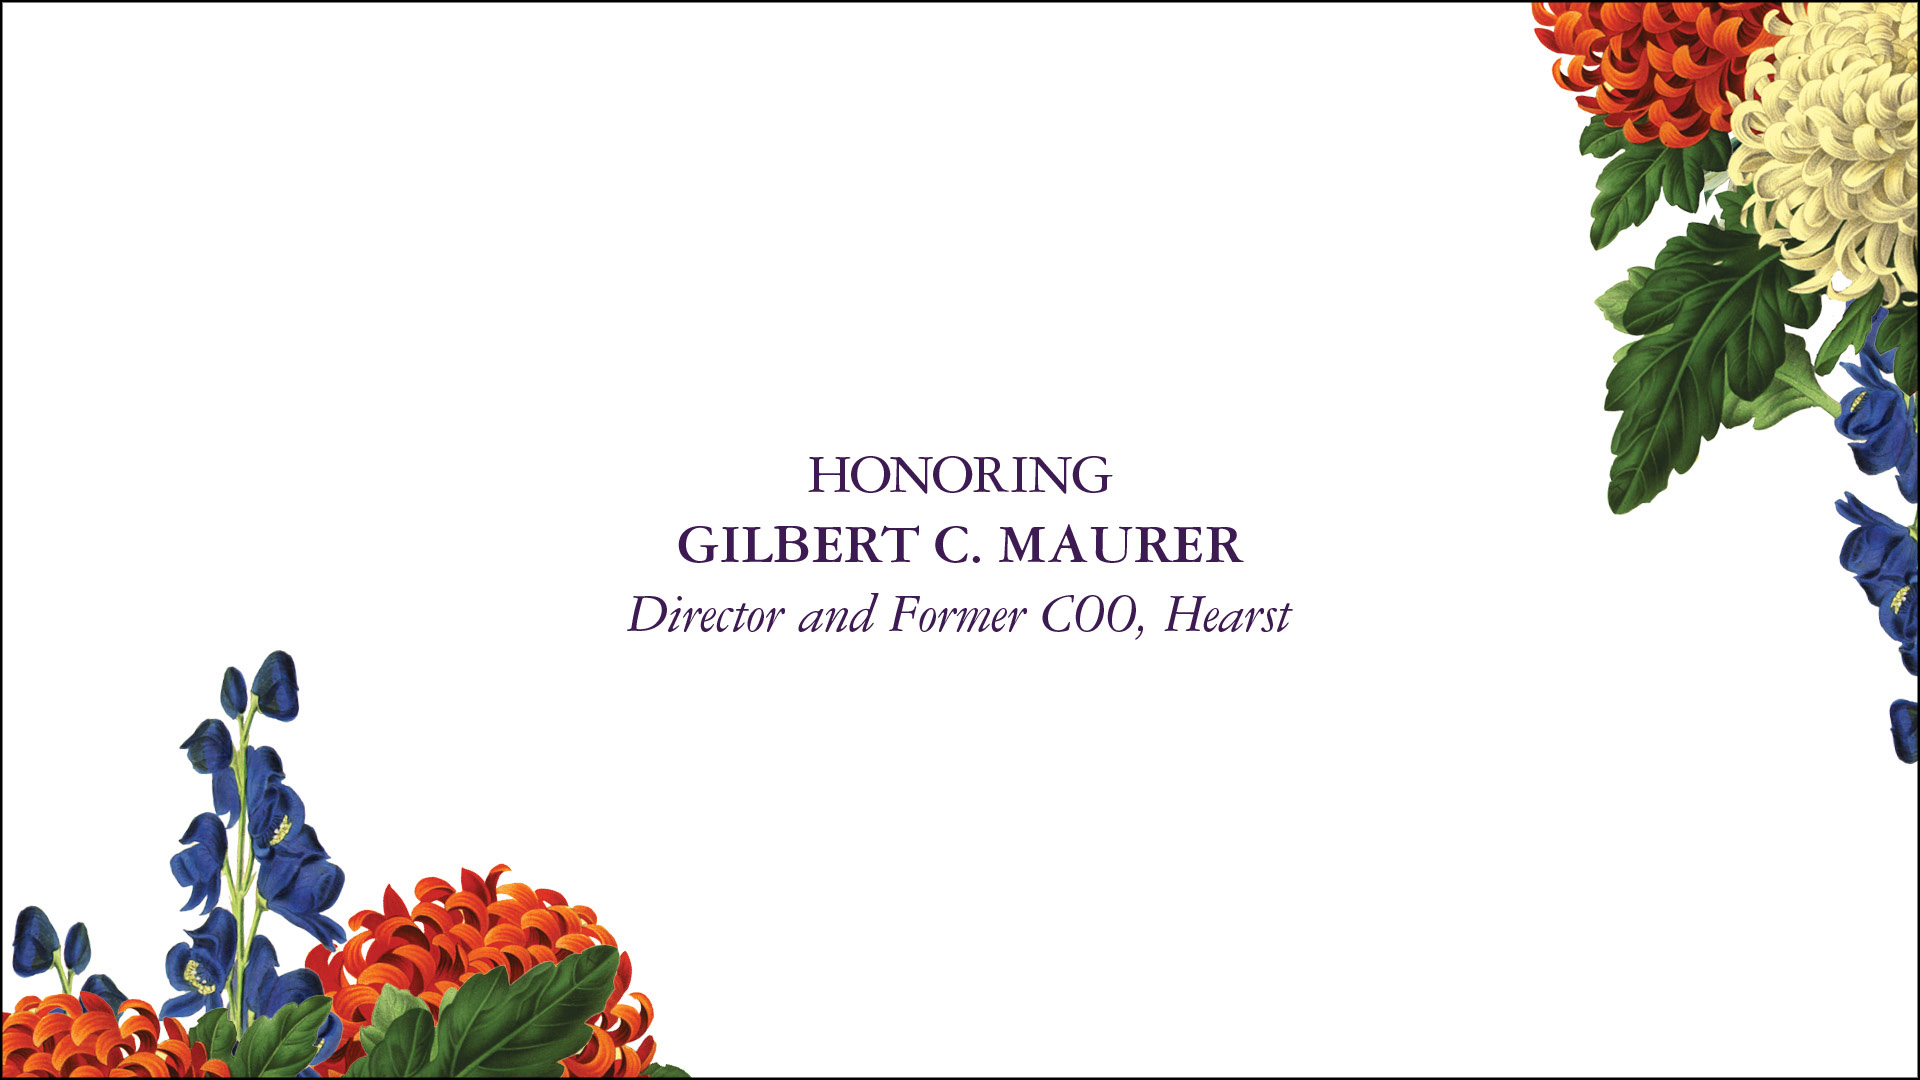 Honoring Gilbert C. Maurer Director and Former COO, Hearst